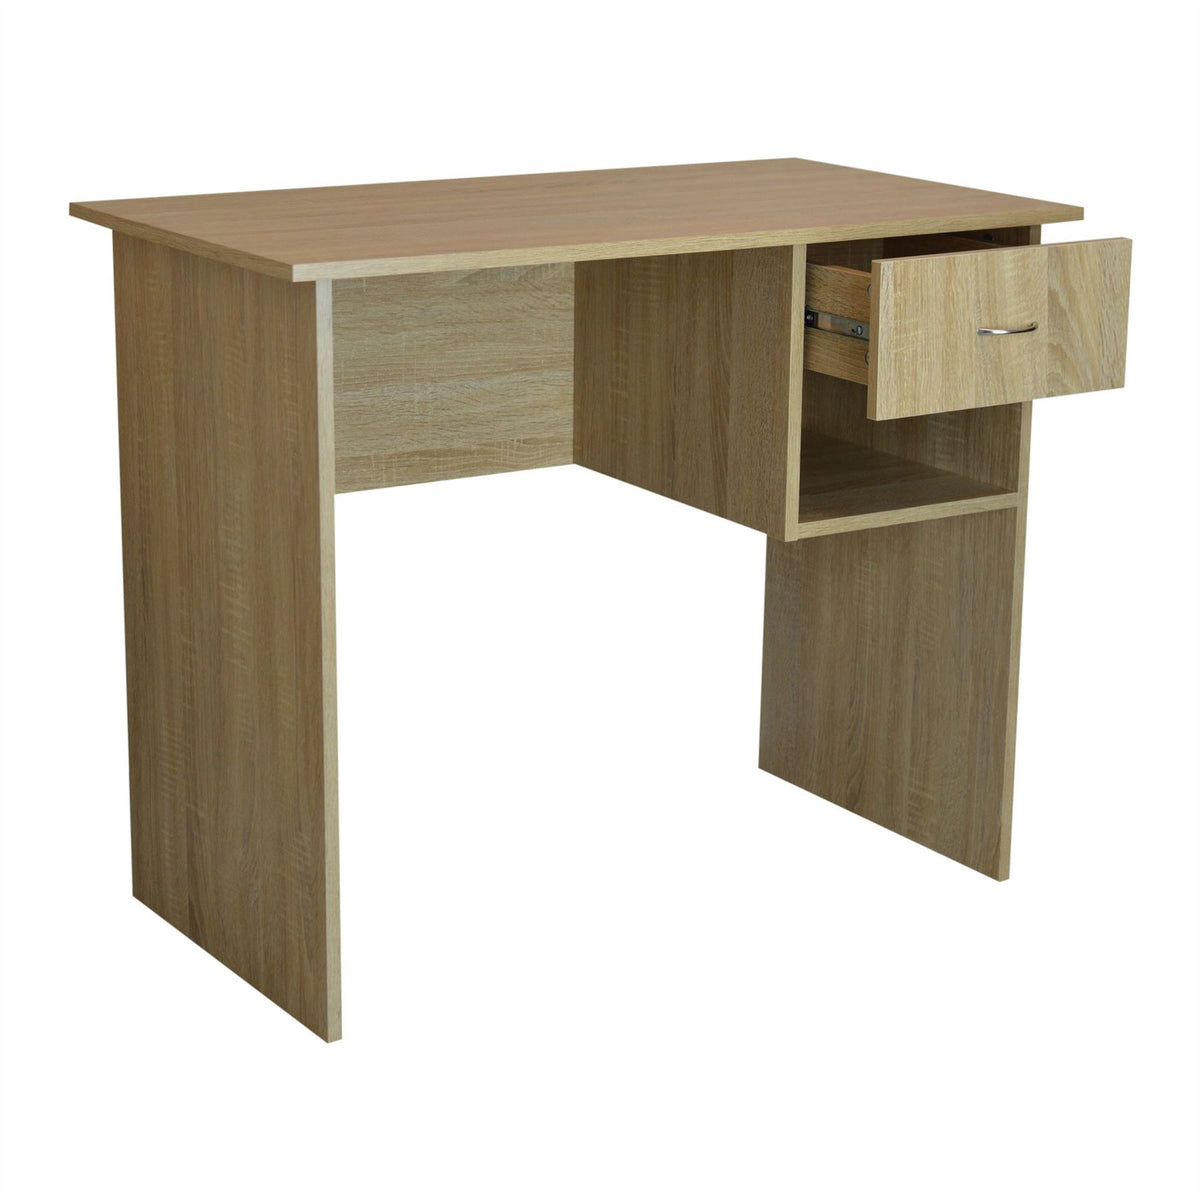 Harbour Housewares Wooden Office Computer Workstation Desk - Natural